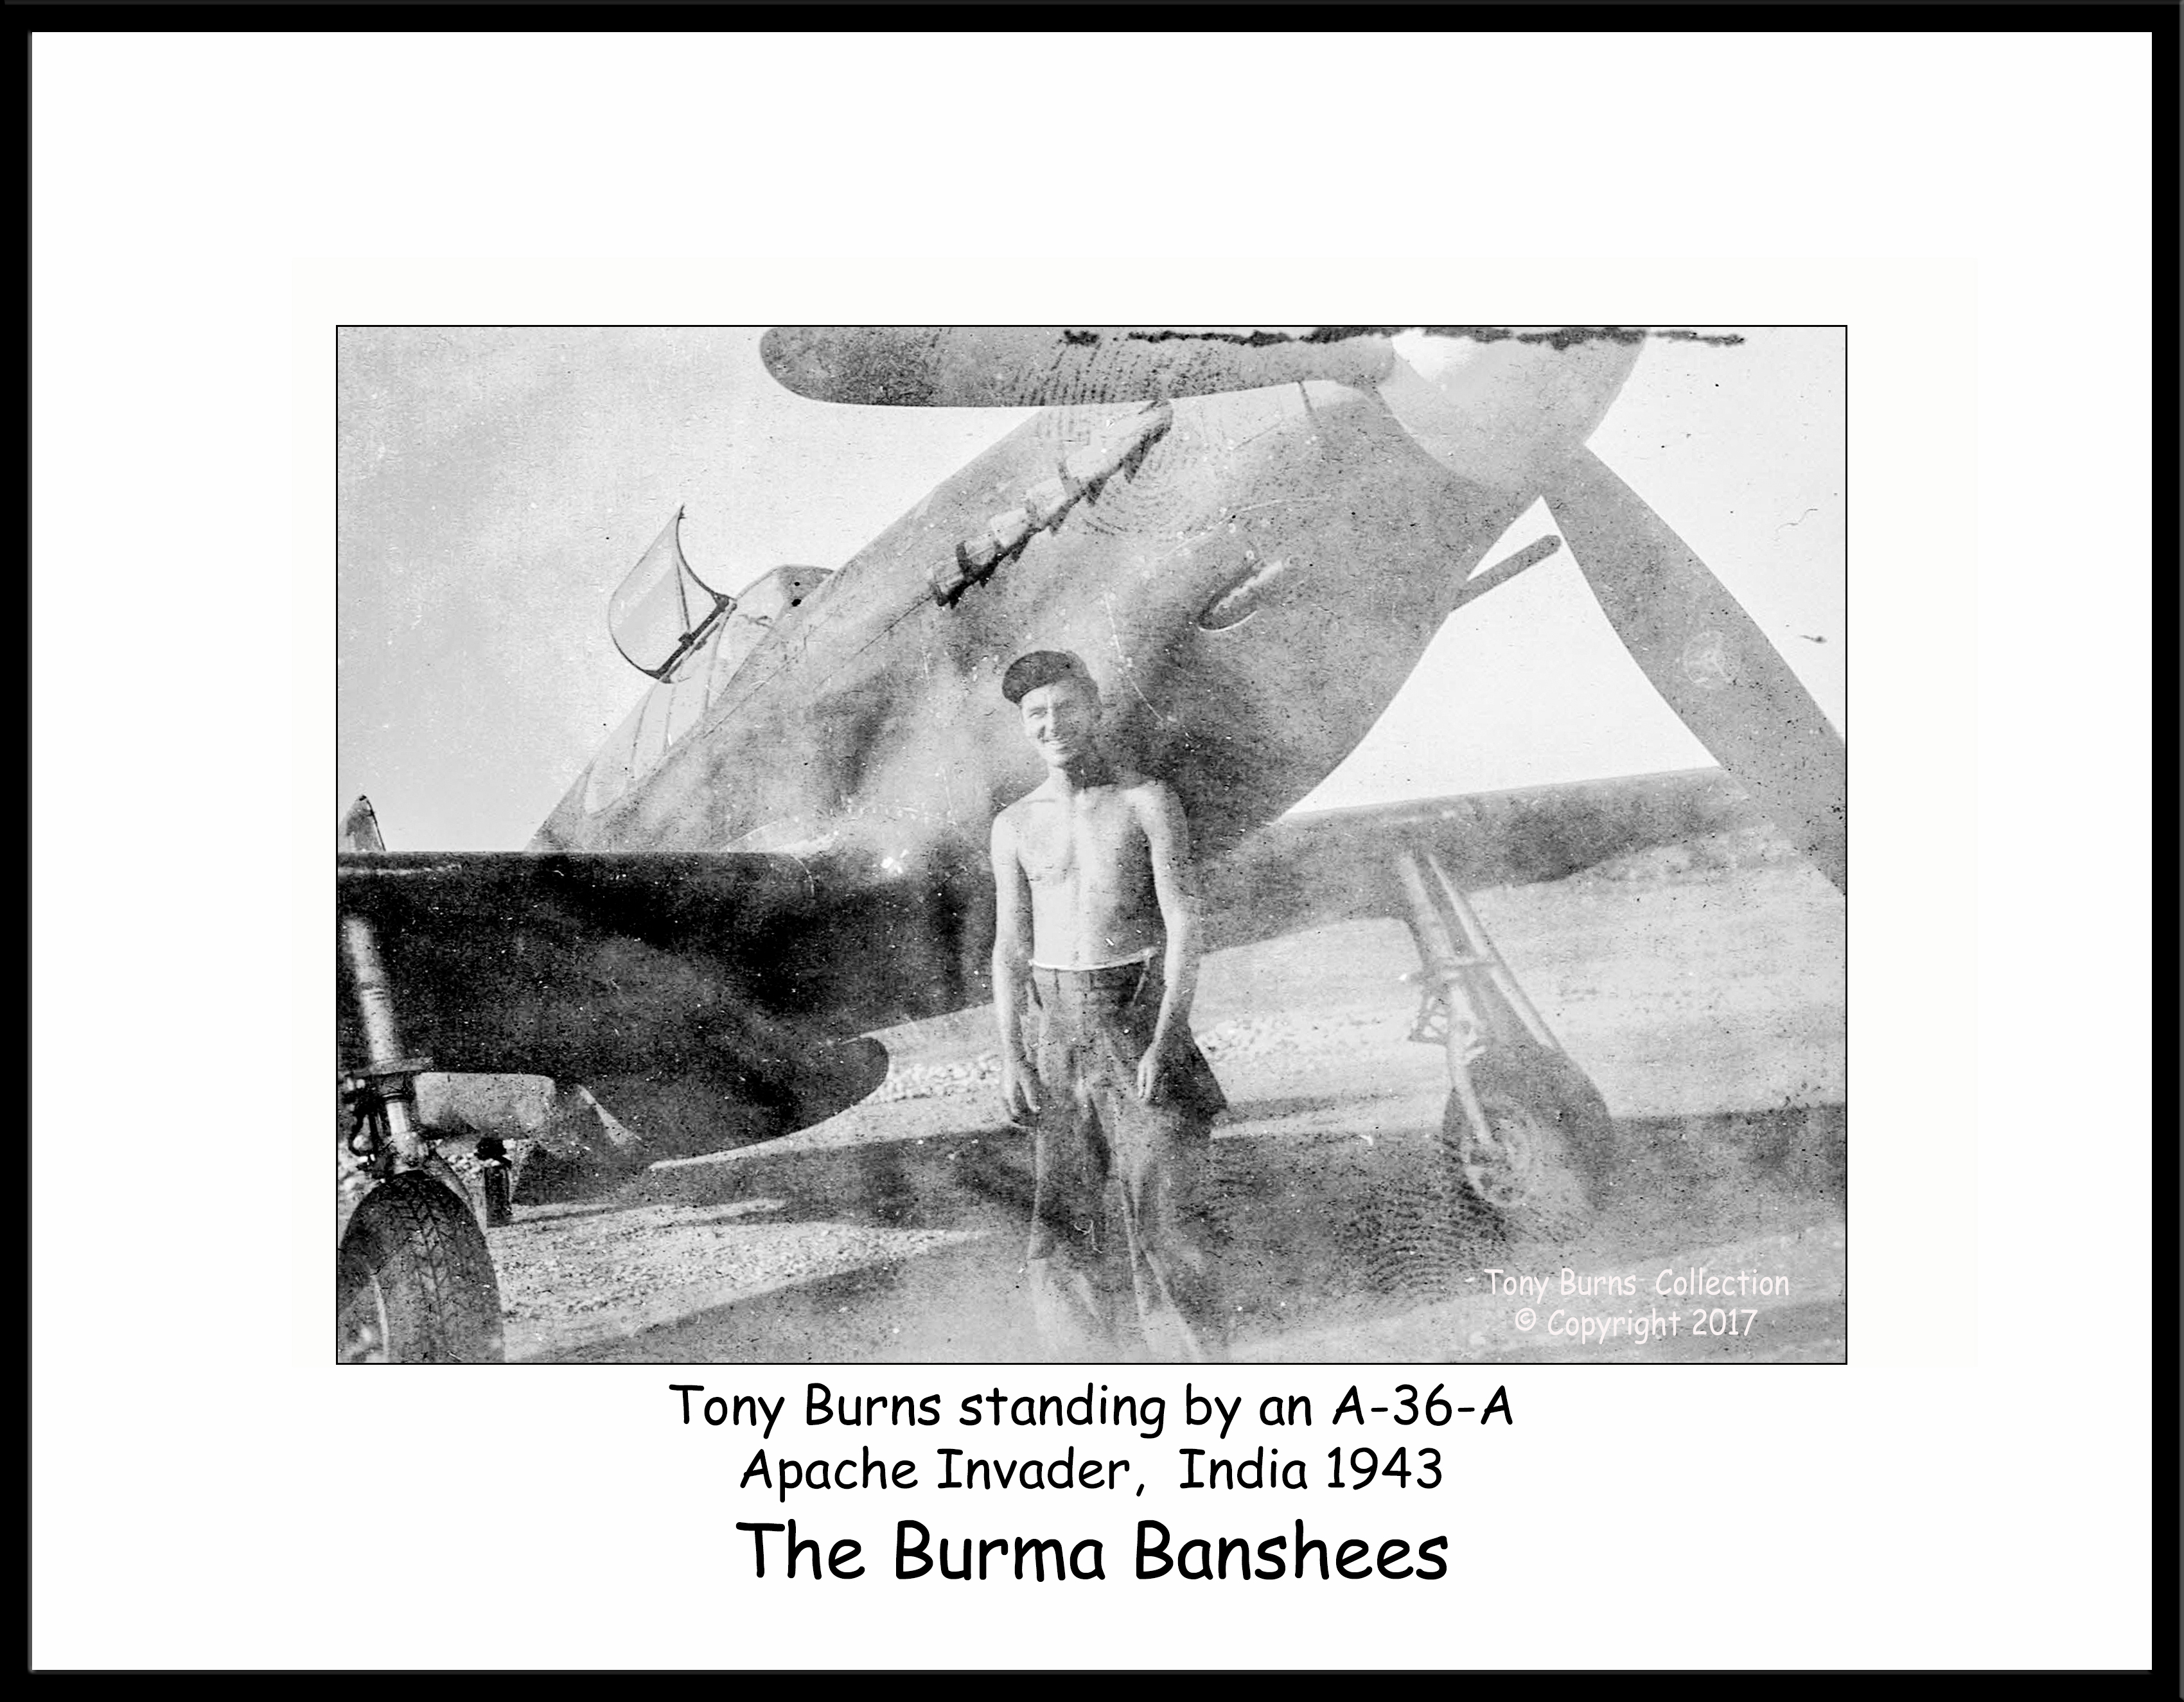 Tony Burns + A-36A Apache India